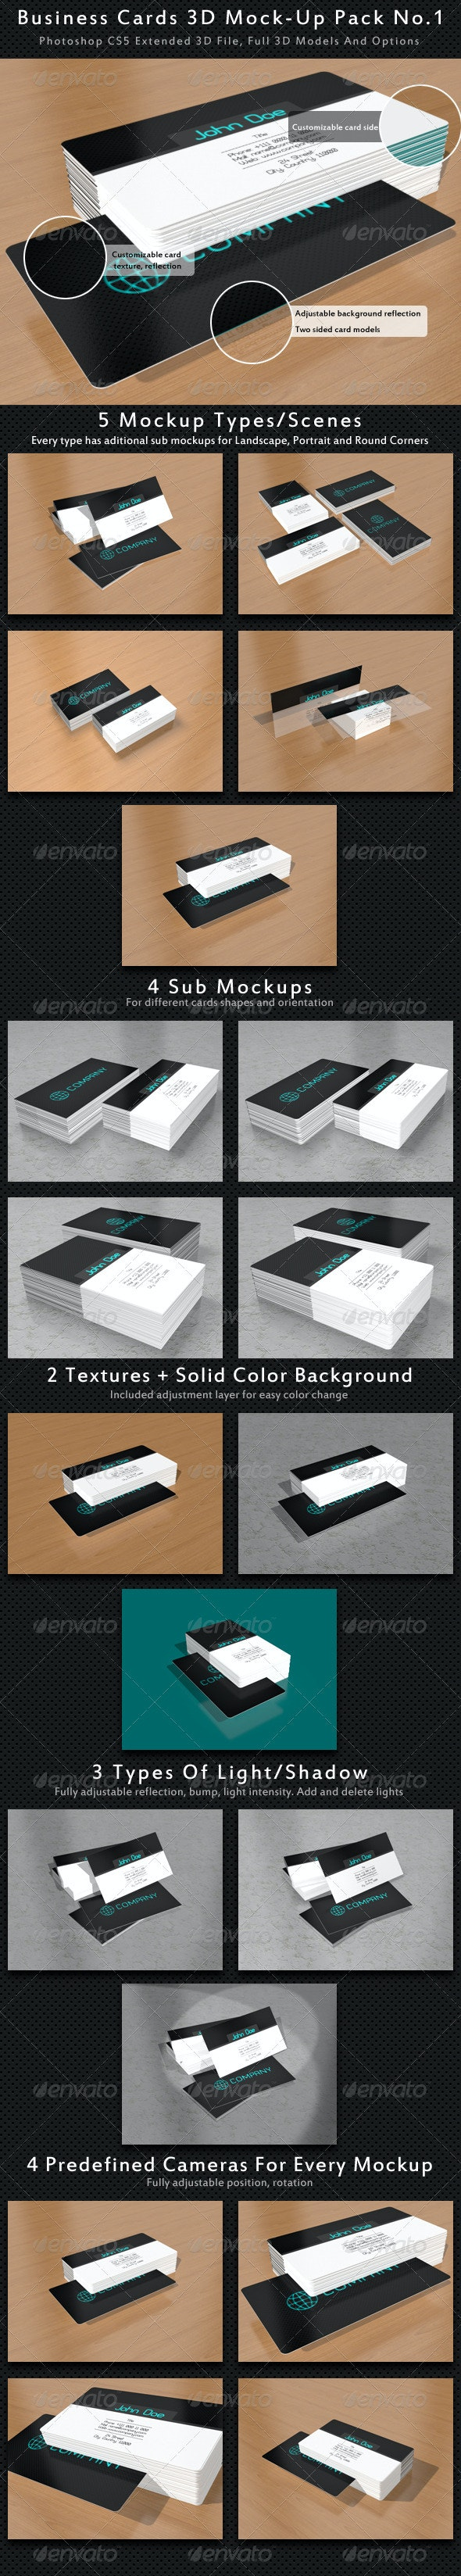 Business Card 3D Mock-Up Pack No.1 - Business Cards Print